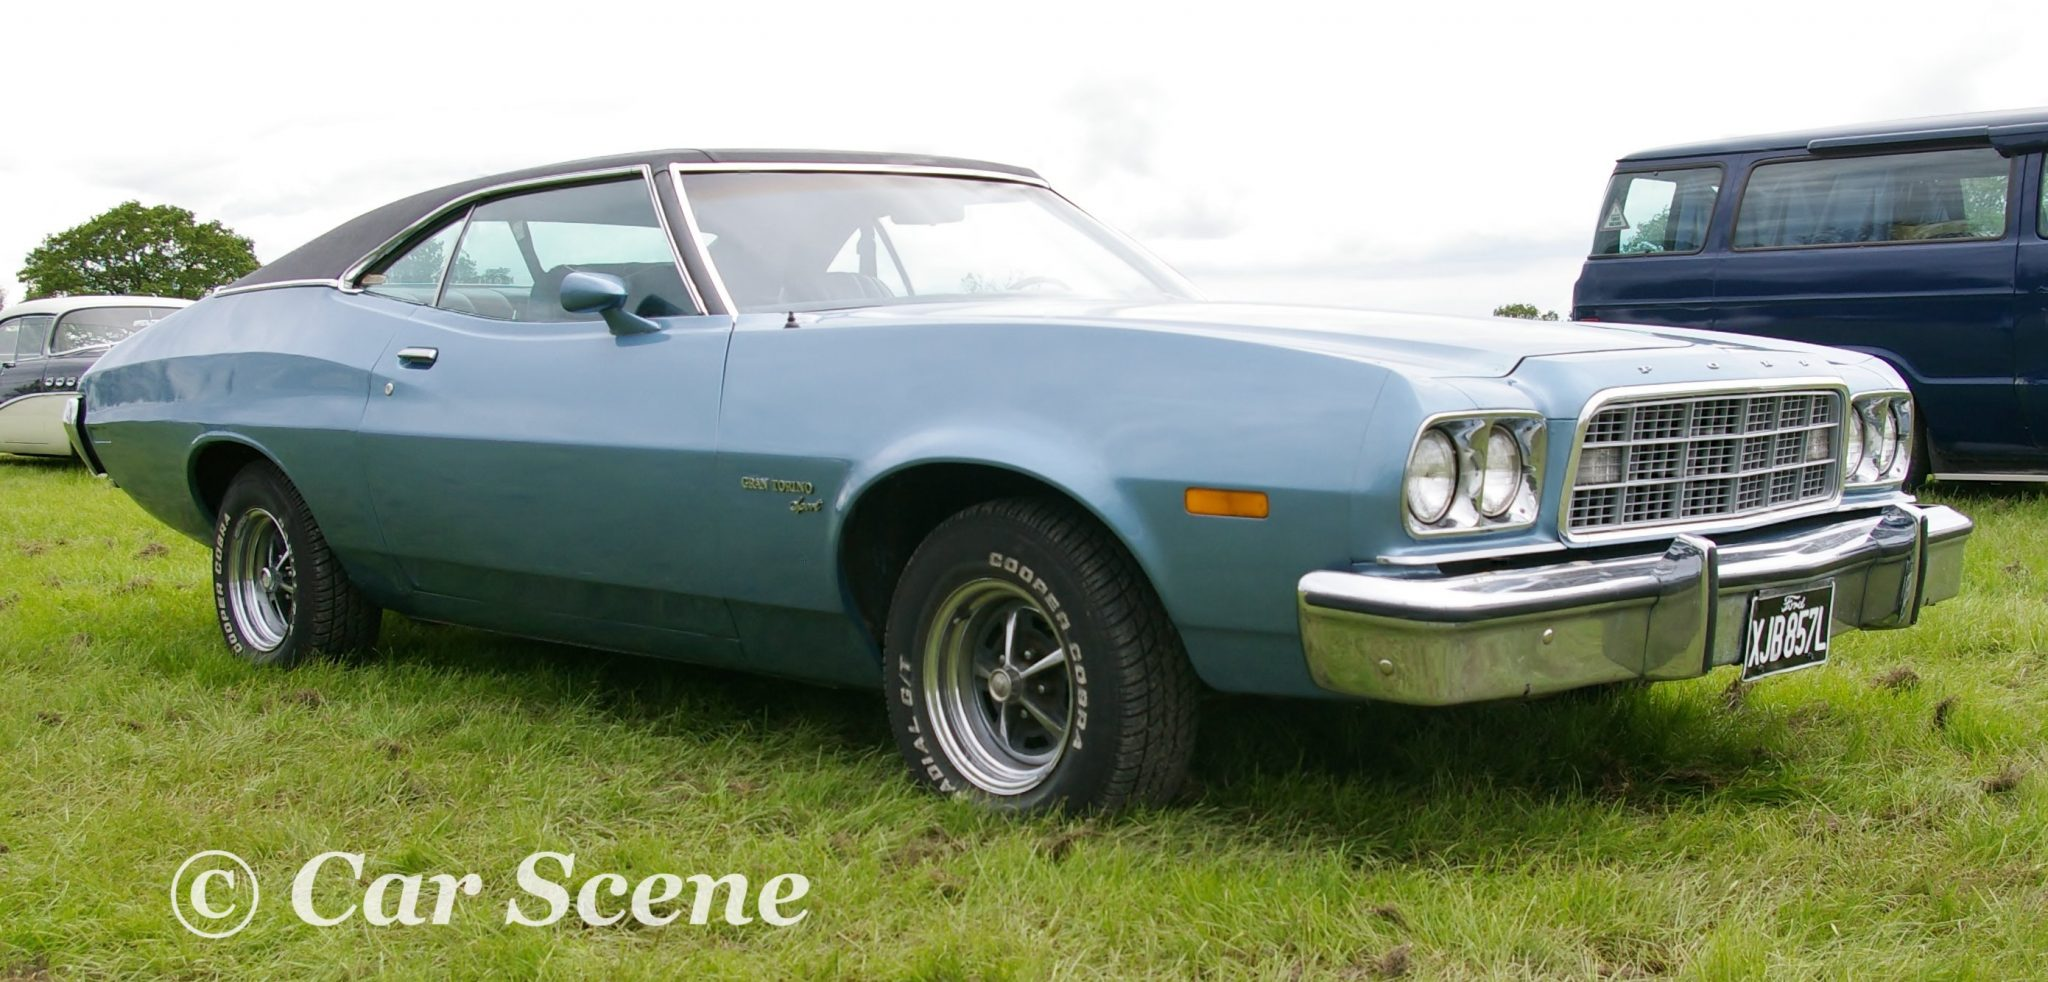 1972 Ford Gran Torino Sport front three quarter view